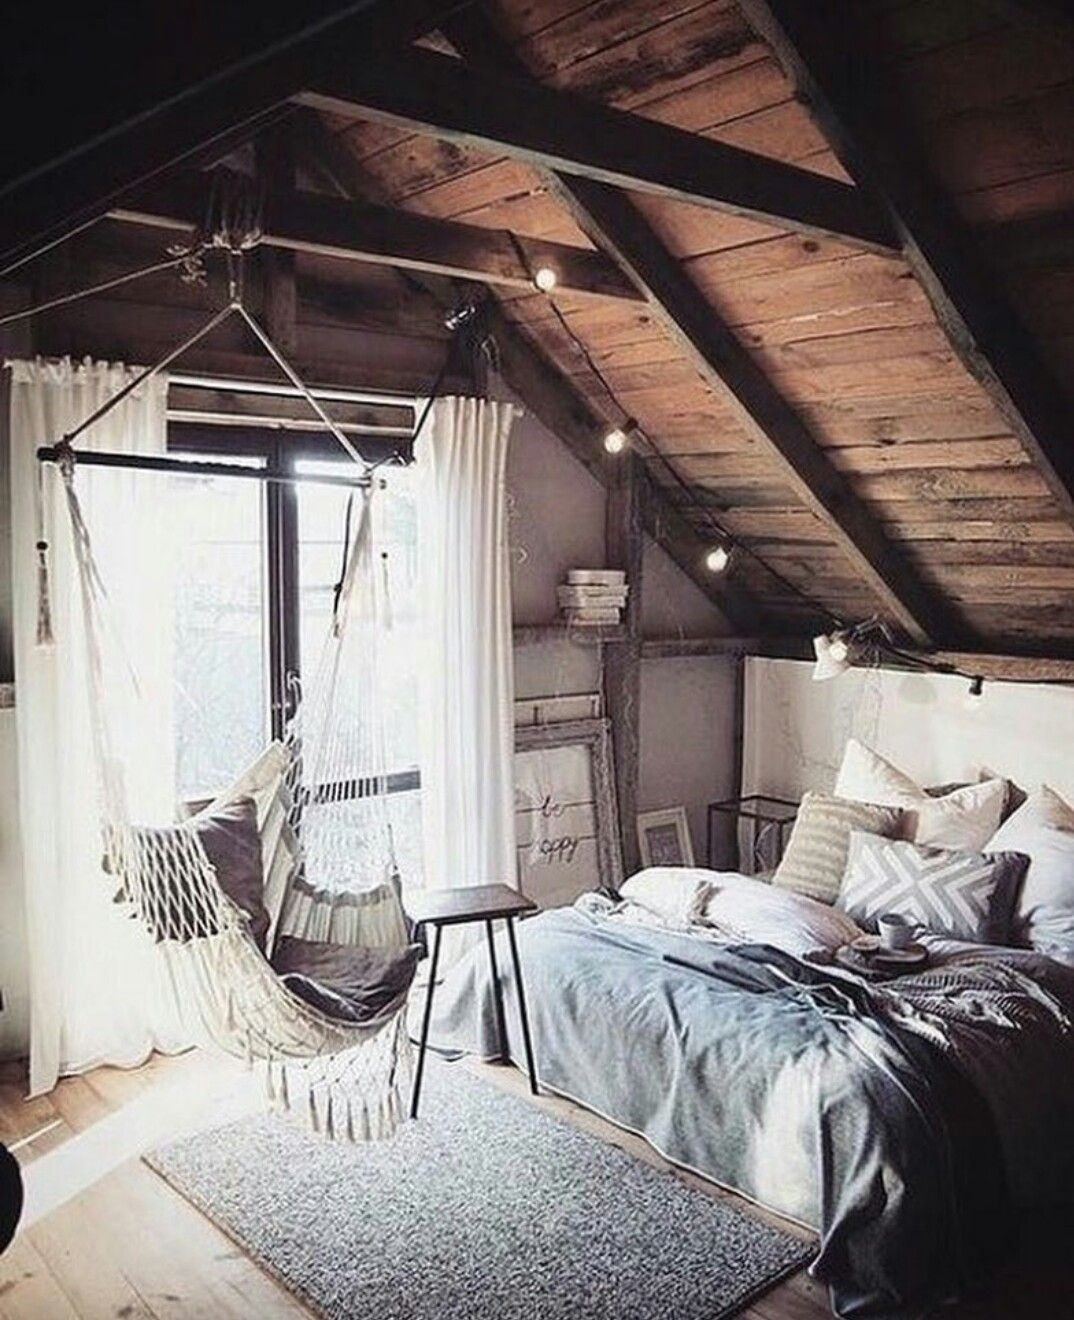 Hanging loft bed ideas  Pin by Maddie Kremer on home  Pinterest  Bedrooms Room and Room ideas